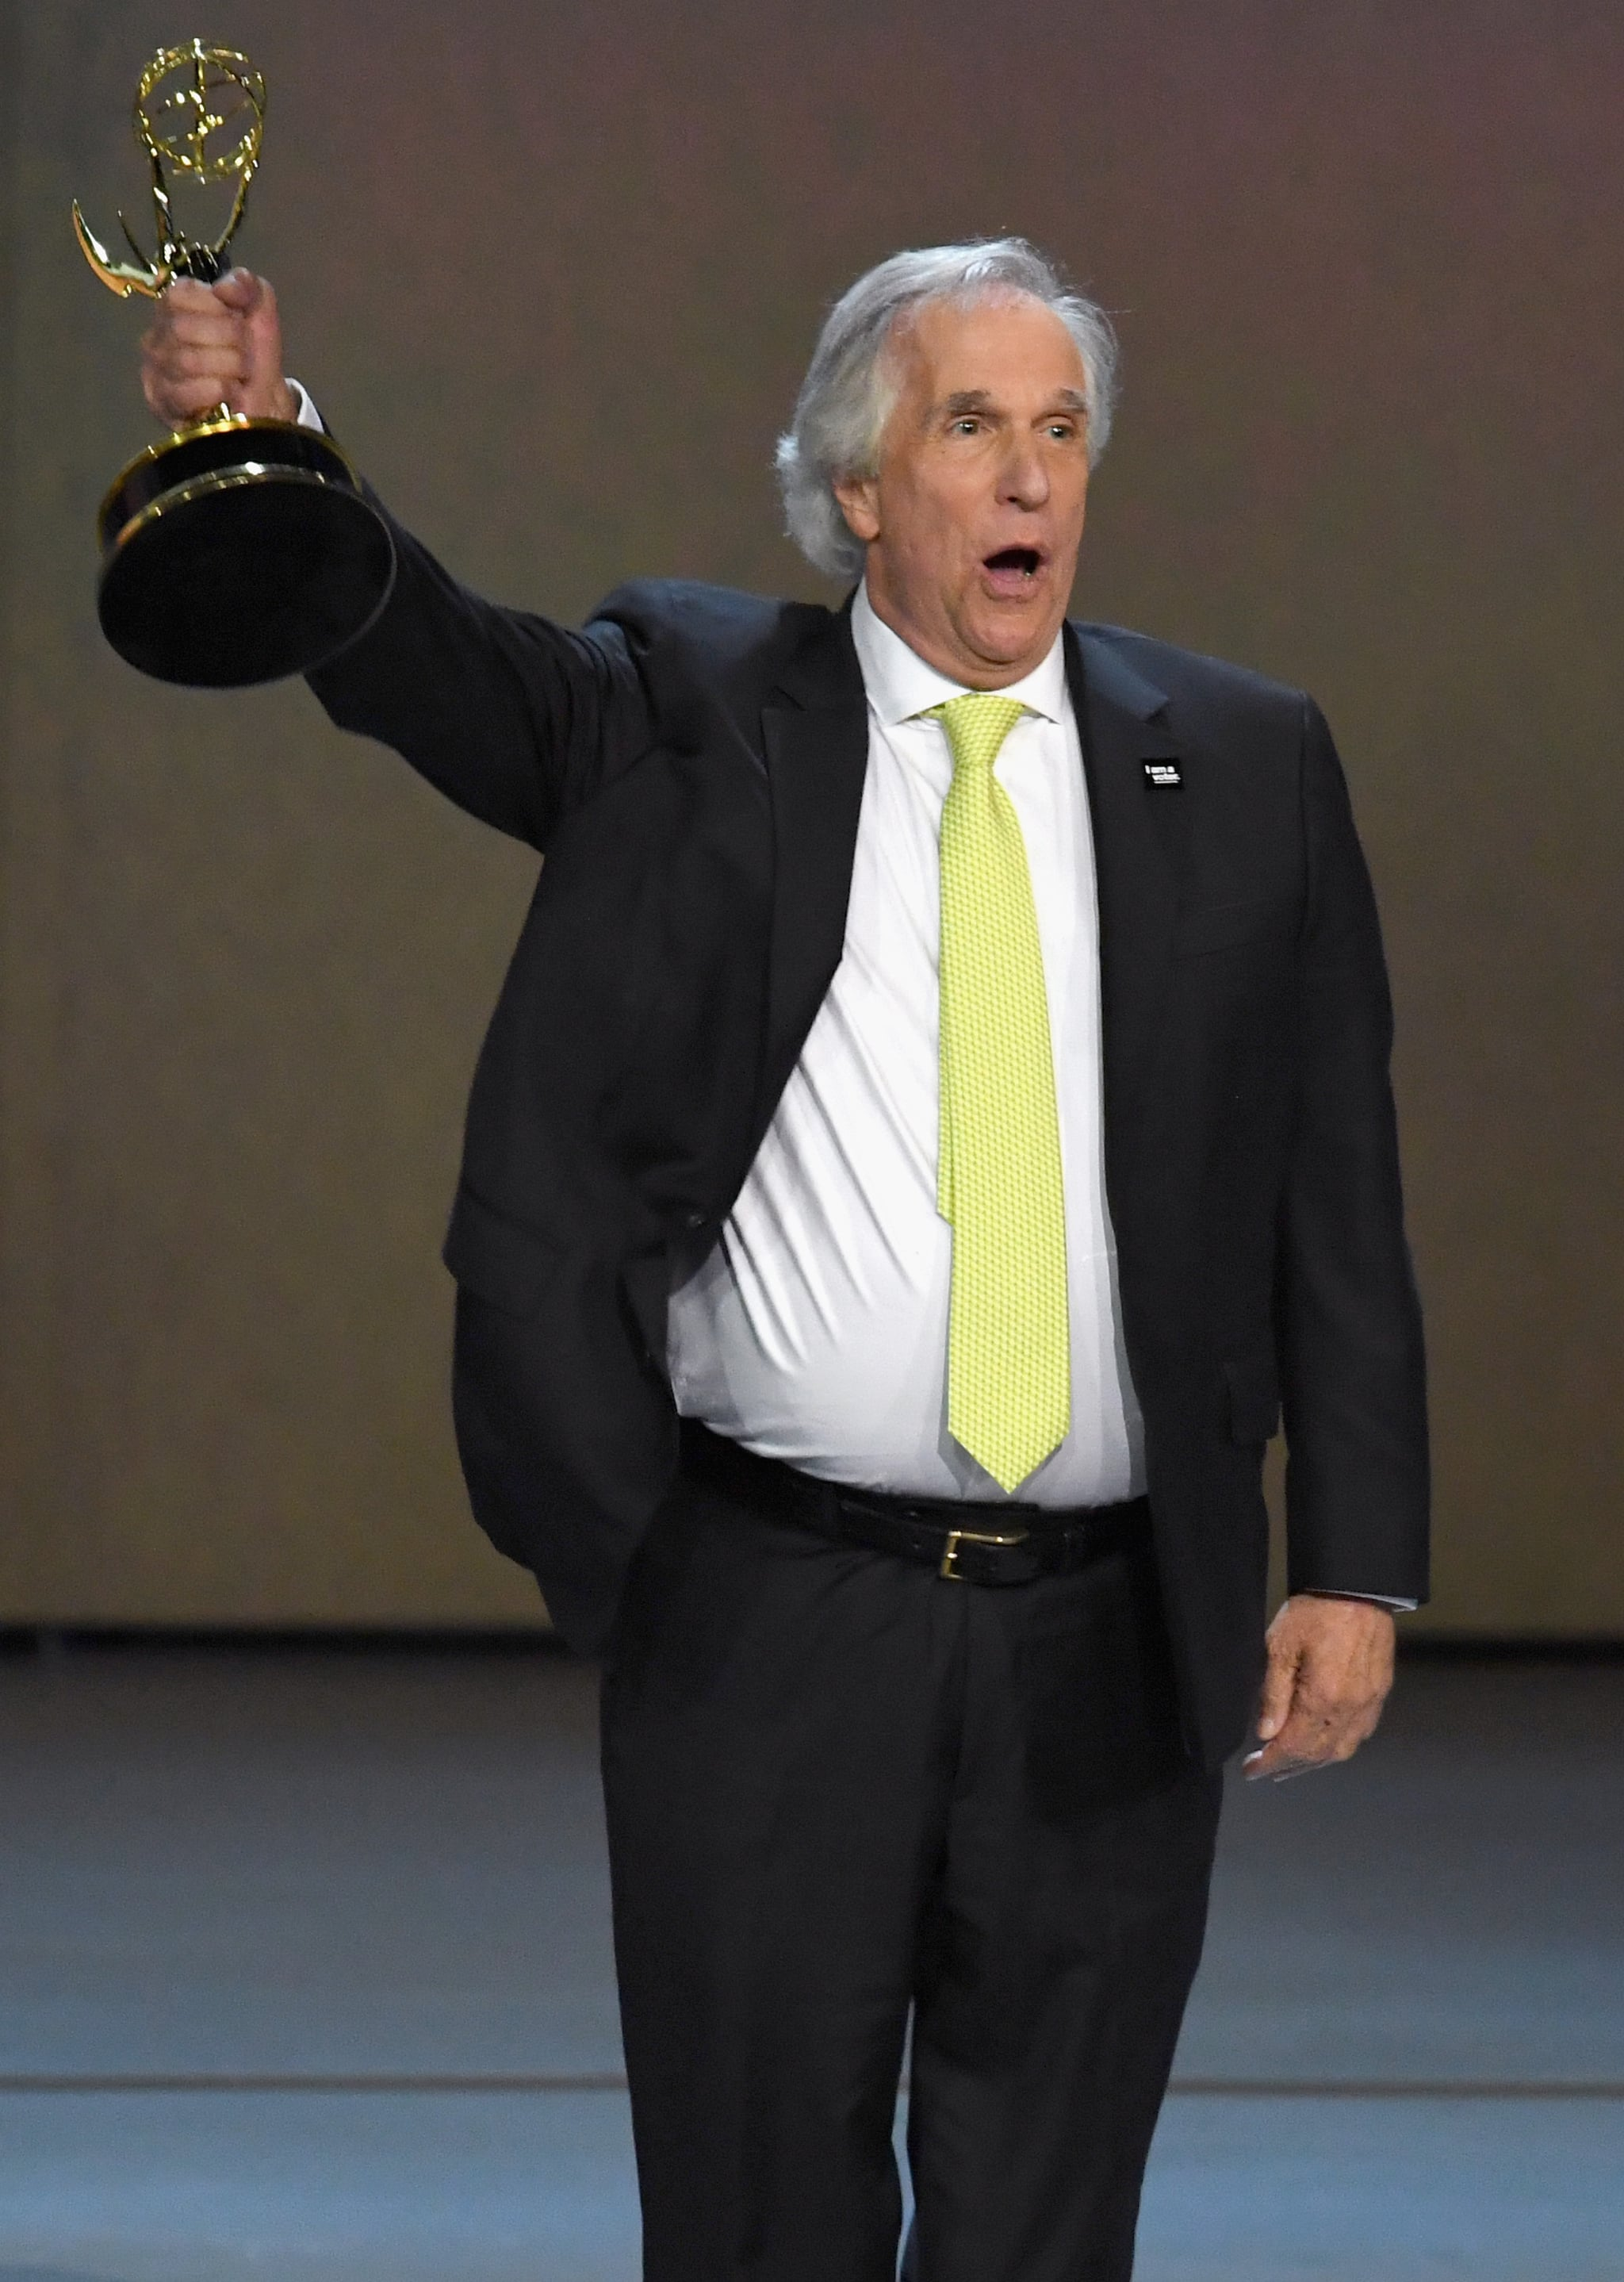 LOS ANGELES, CA - SEPTEMBER 17:  Henry Winkler accepts the Outstanding Supporting Actor in a Comedy Series award for 'Barry' onstage during the 70th Emmy Awards at Microsoft Theatre on September 17, 2018 in Los Angeles, California.  (Photo by Kevin Winter/Getty Images)